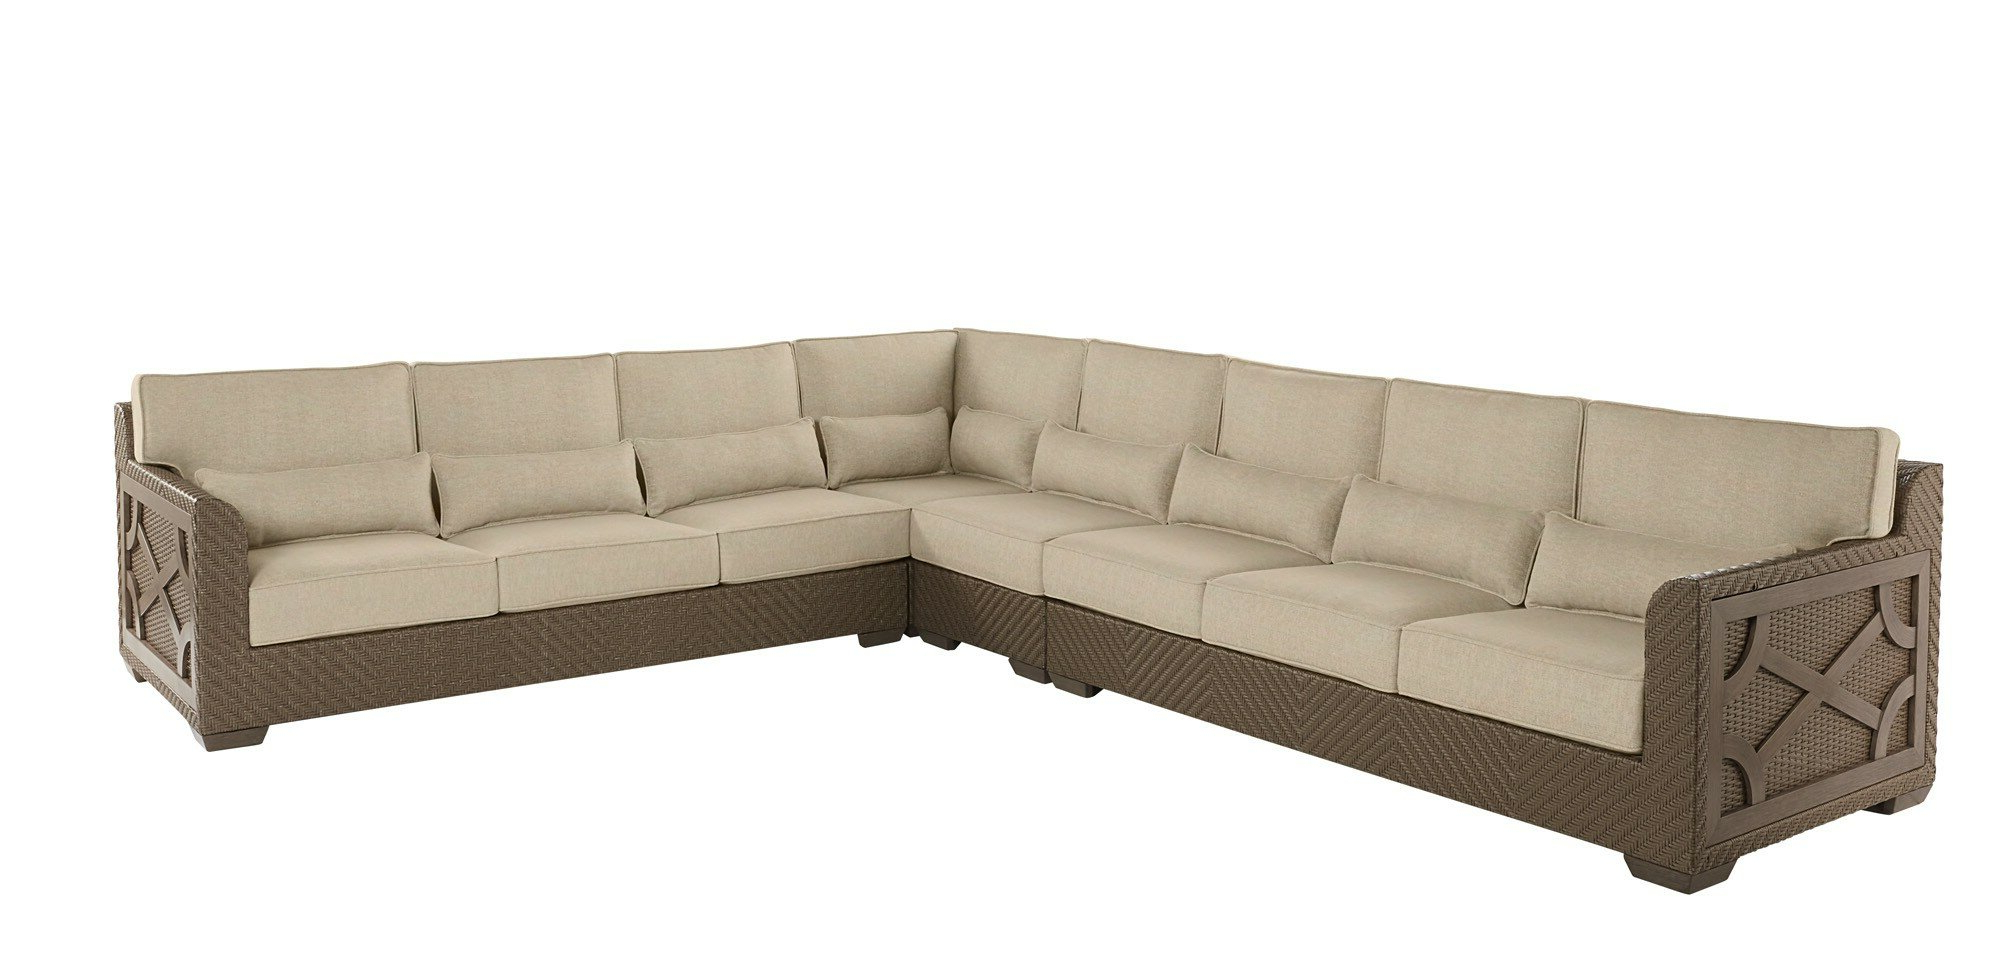 Well Liked Astrid Symmetrical Modular Sectional Inside Astrid Wicker Patio Sofas With Cushions (View 6 of 25)